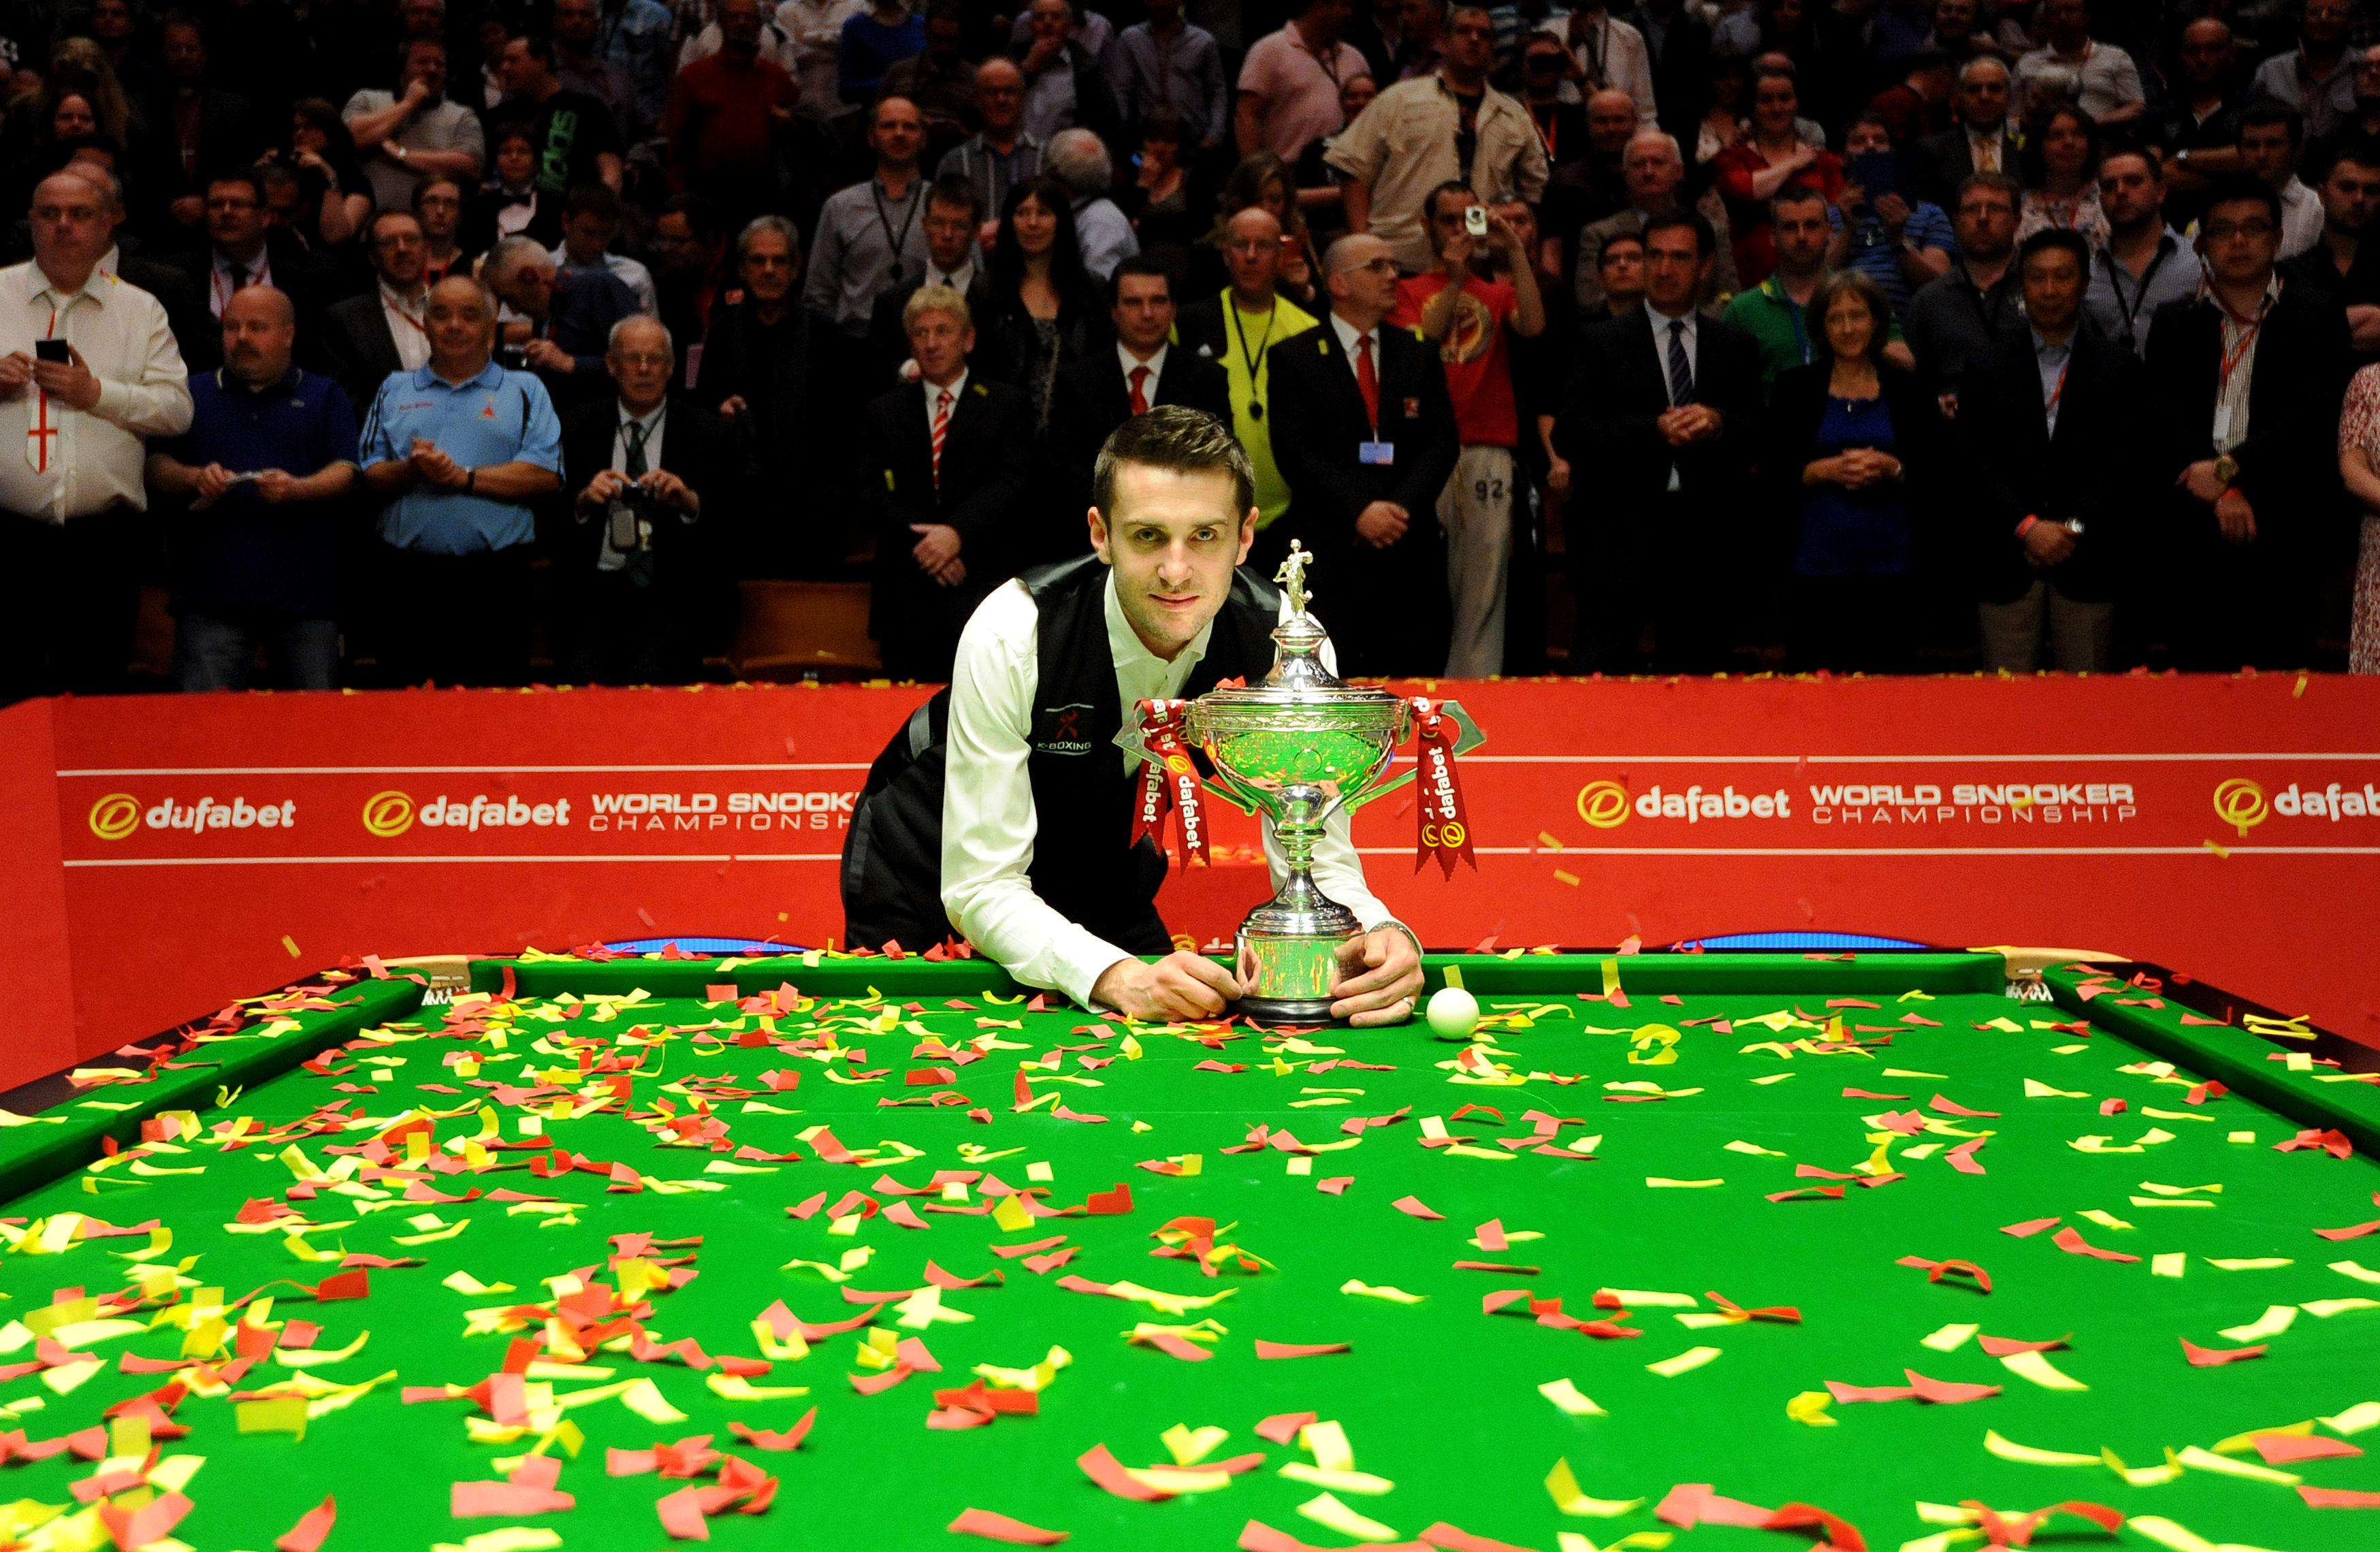 Mark Selby will be fighting to retain his title for the third year in a row